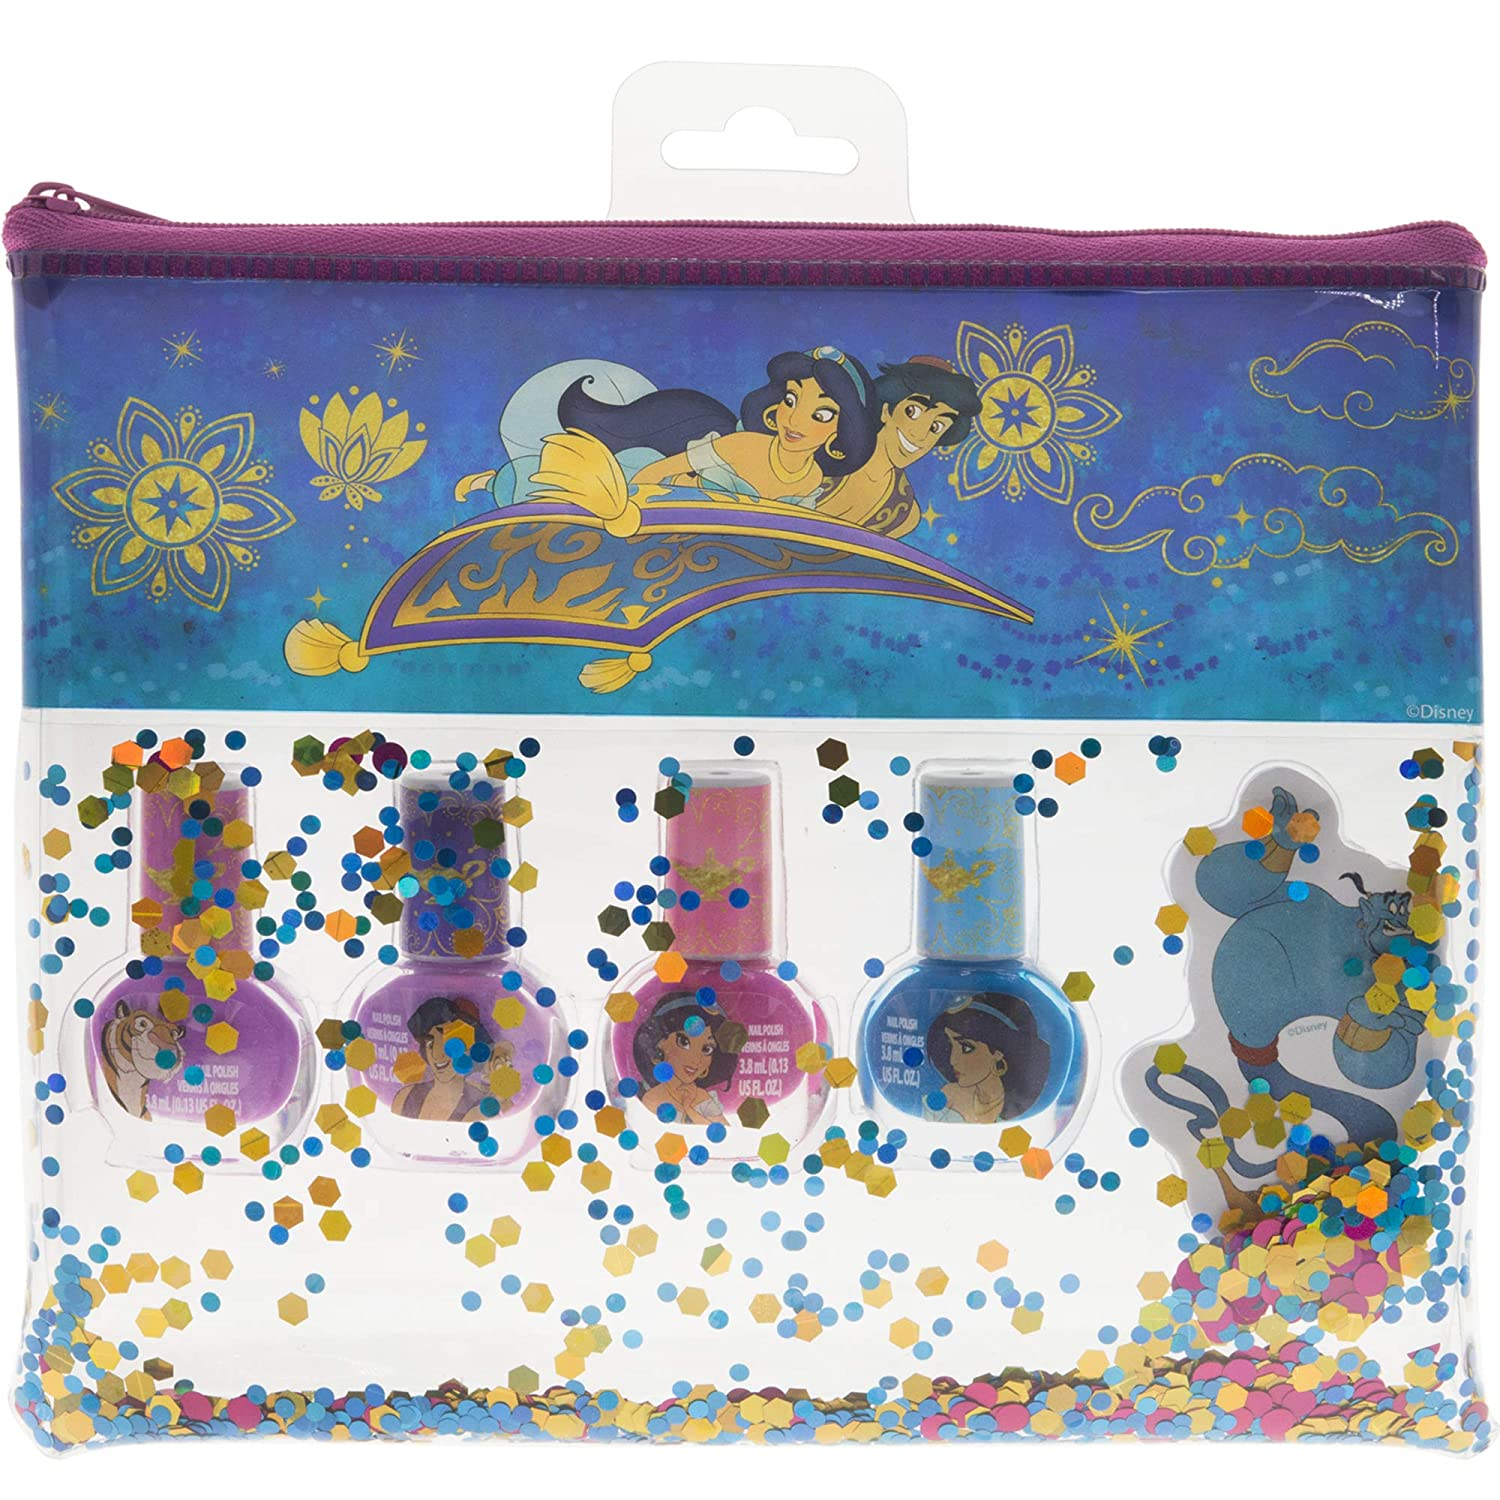 Townley Girl Disney Aladdin Non-Toxic Peel-Off Nail Polish Set with Nail File and Glitter Bag for Girls, Opaque Colors, Ages 3+ (4 Pack)